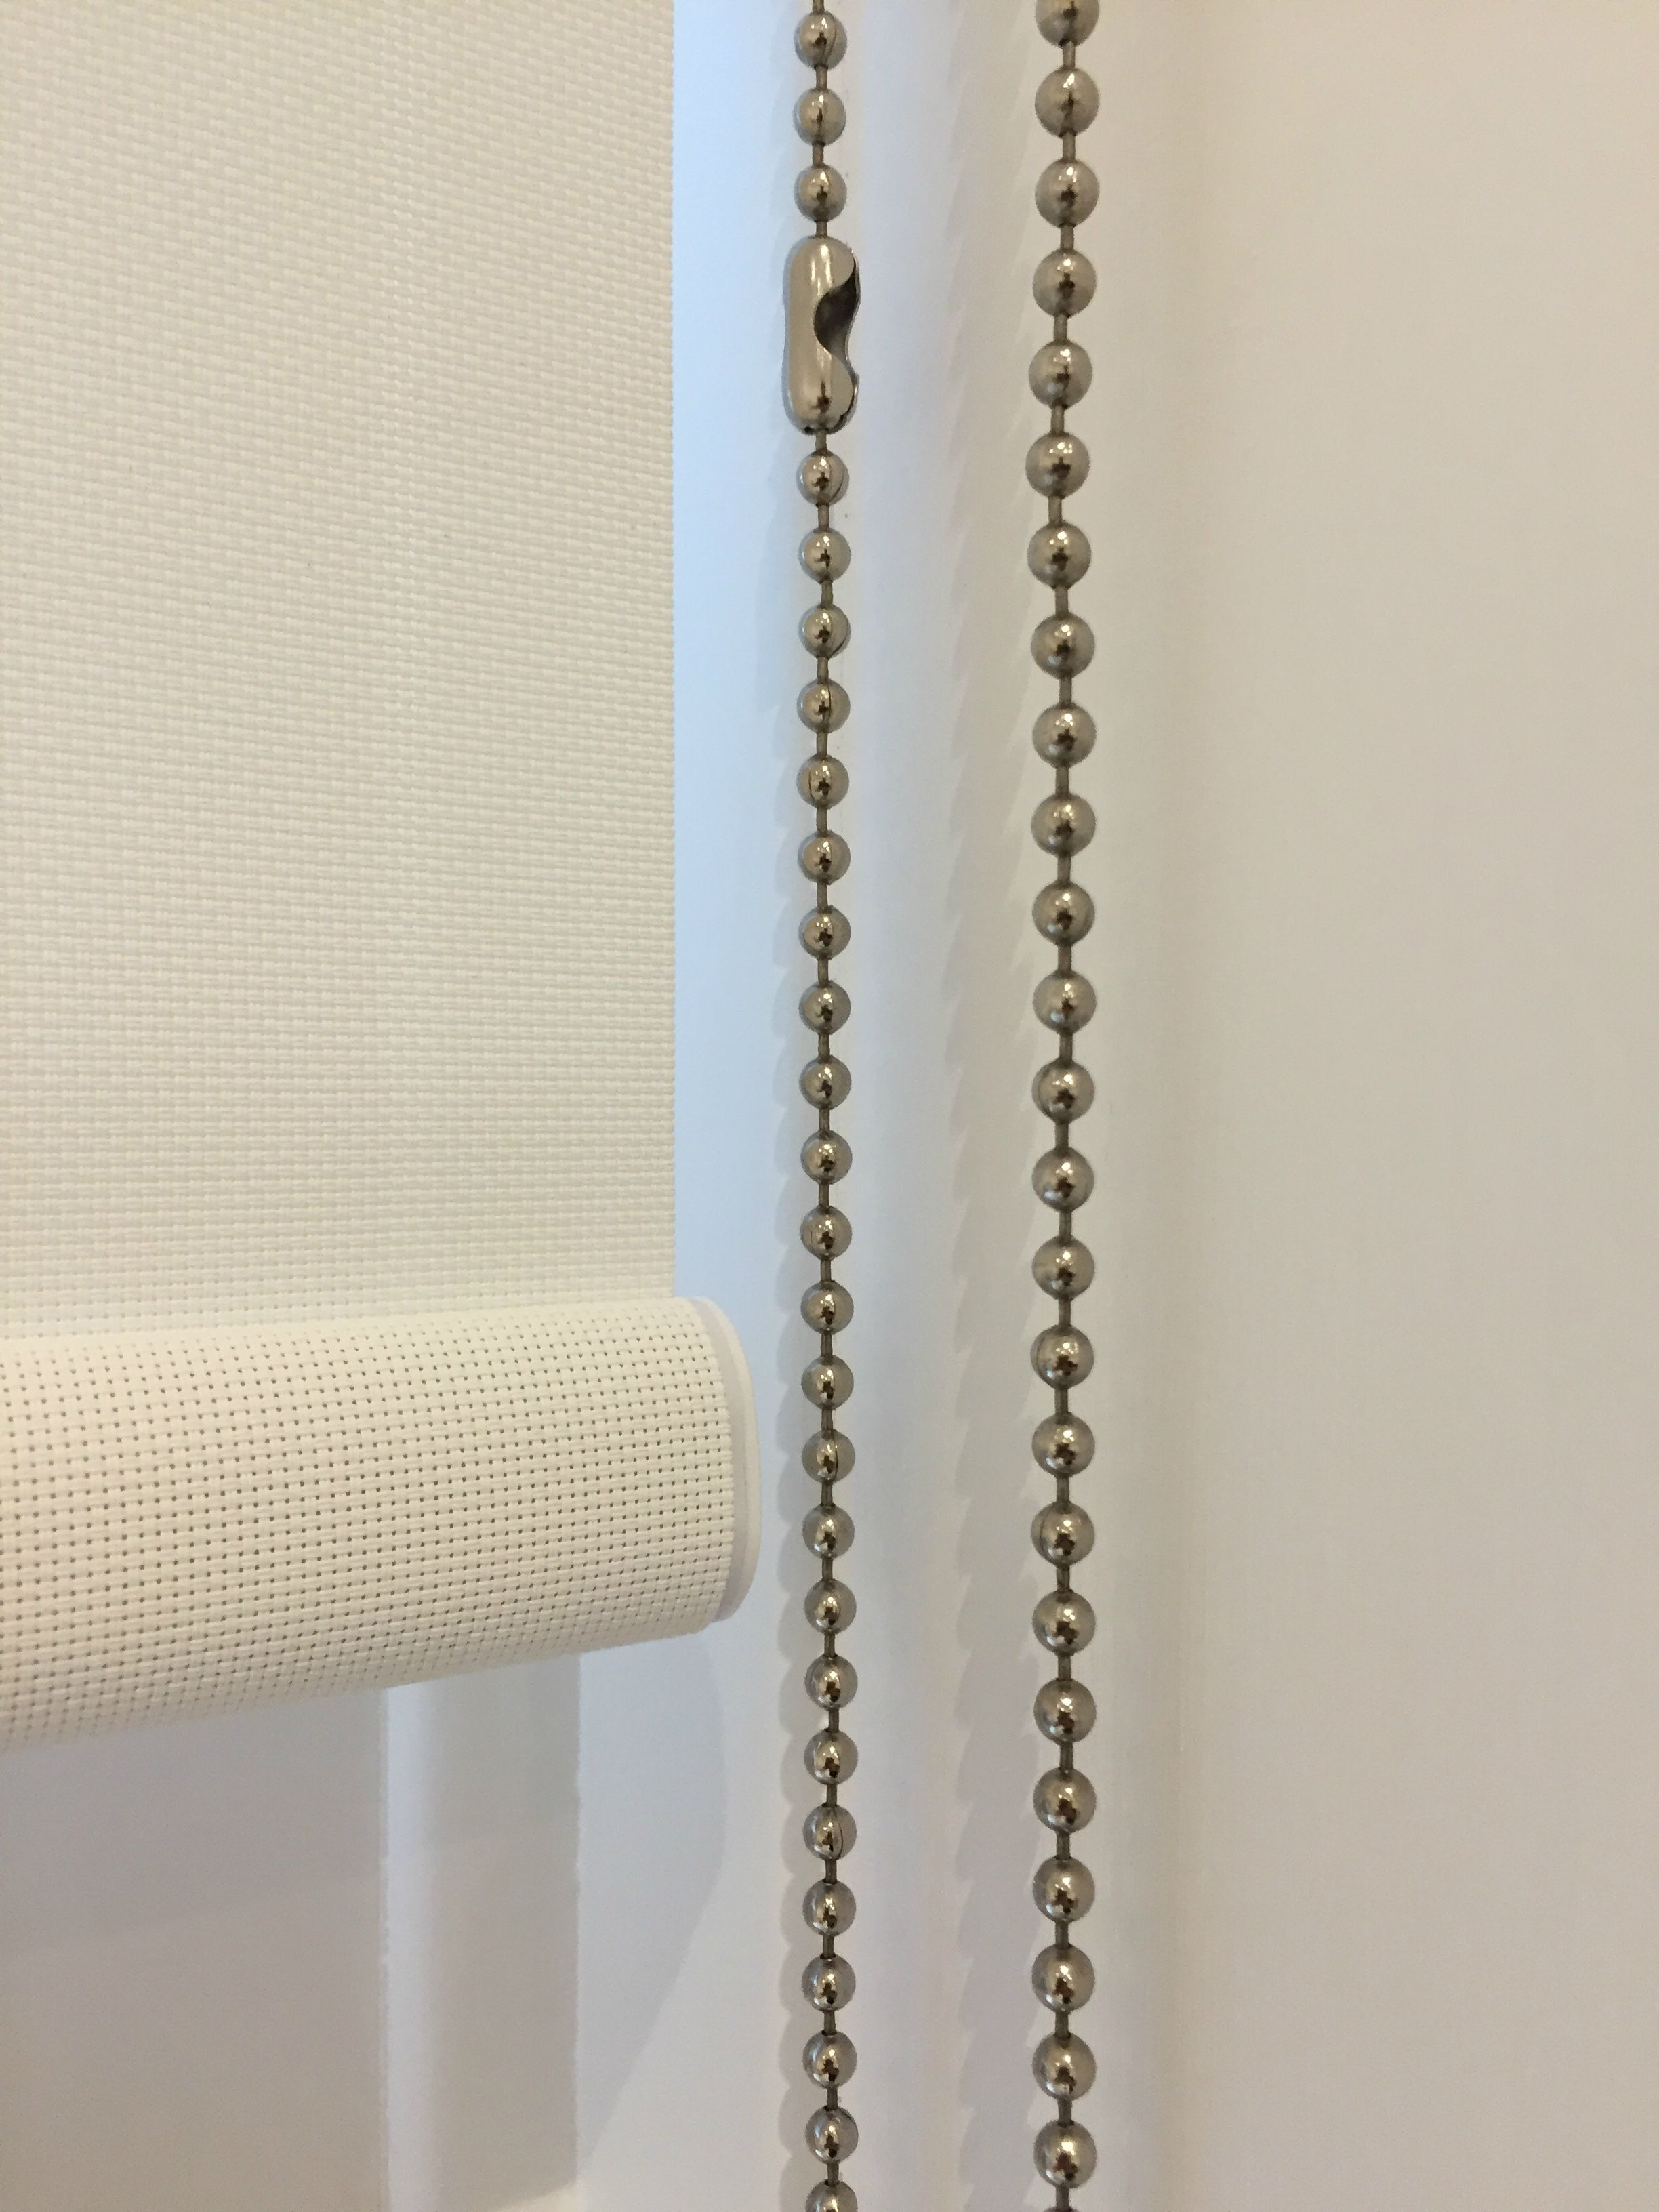 Sunscreen Roller Blind Detail With Chain Control And Chain